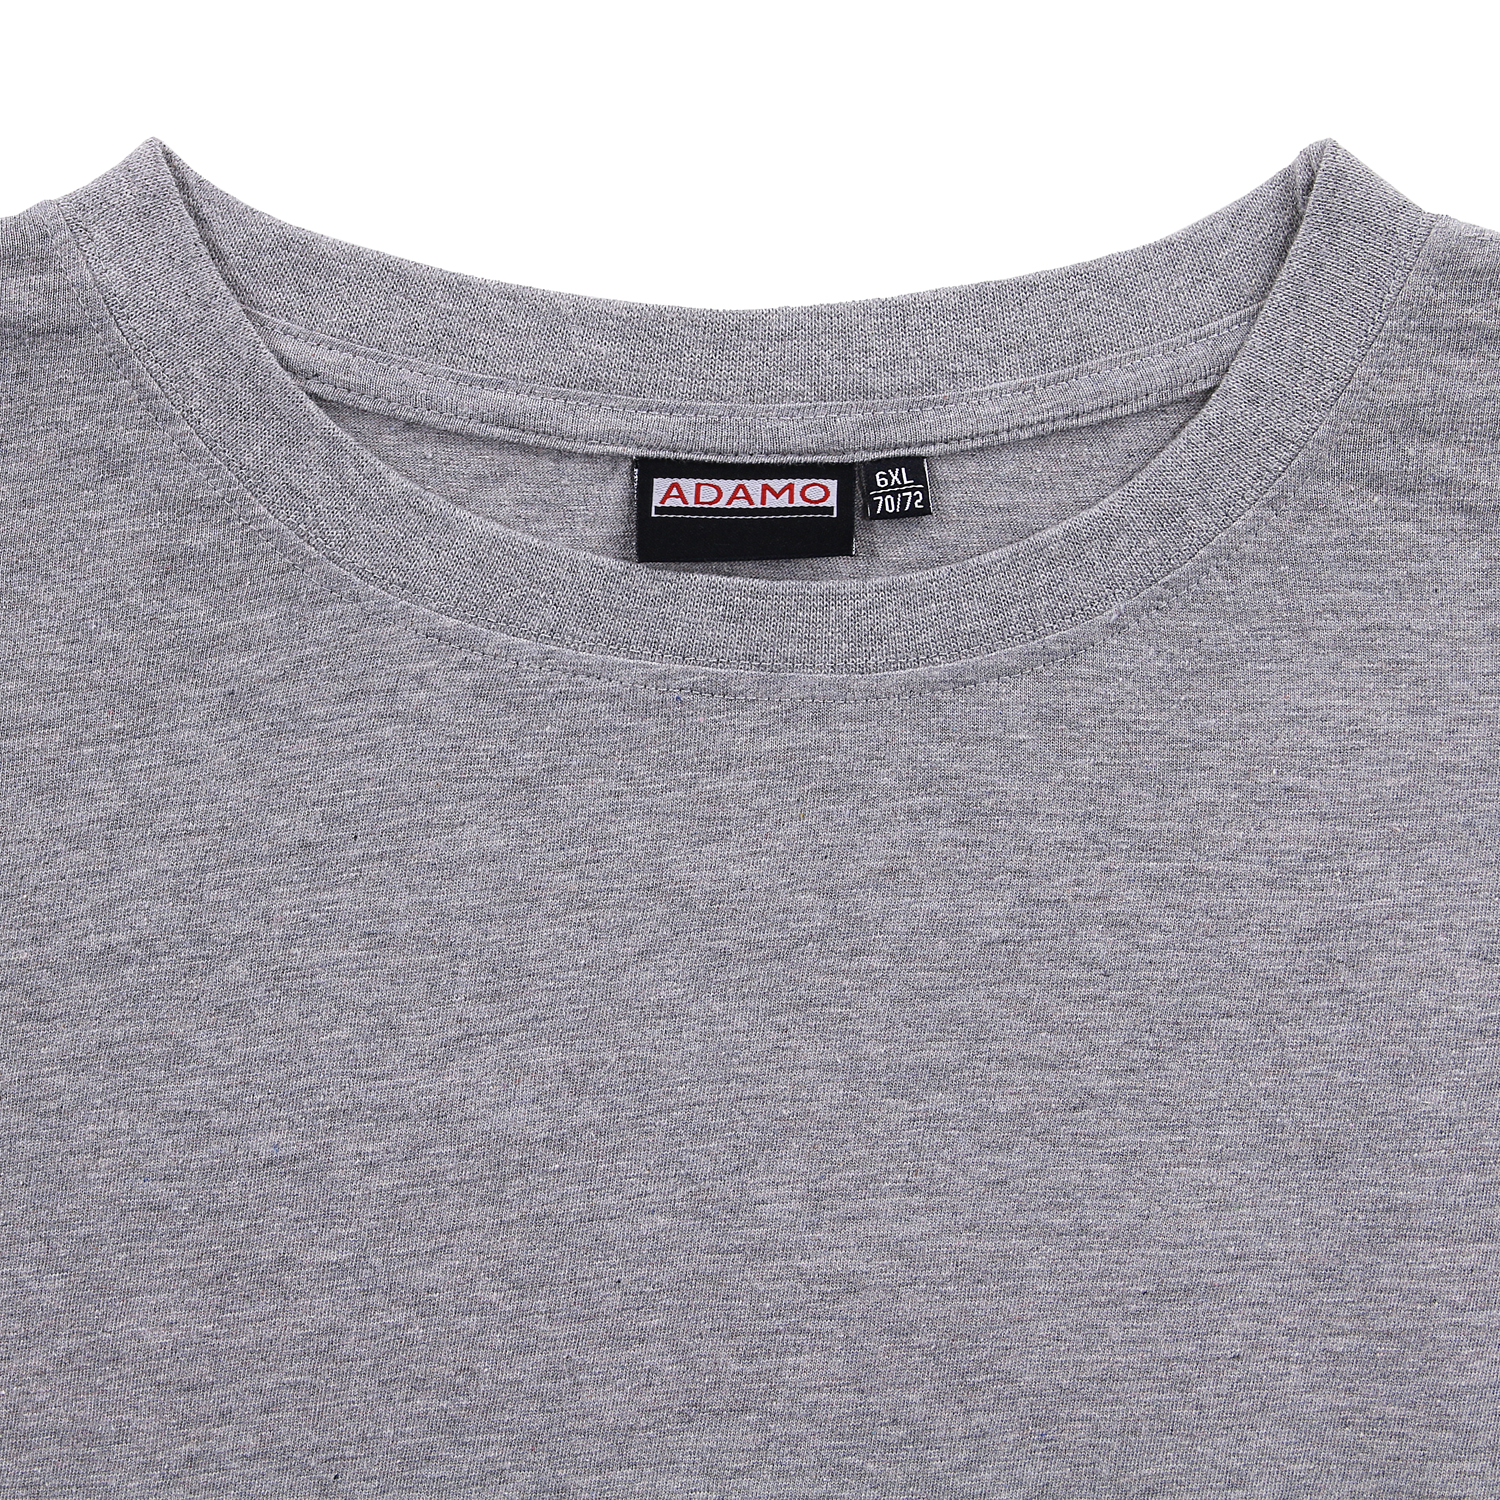 Detail Image to Double pack grey mottled MARLON t-shirt by ADAMO up to kingsize 12XL